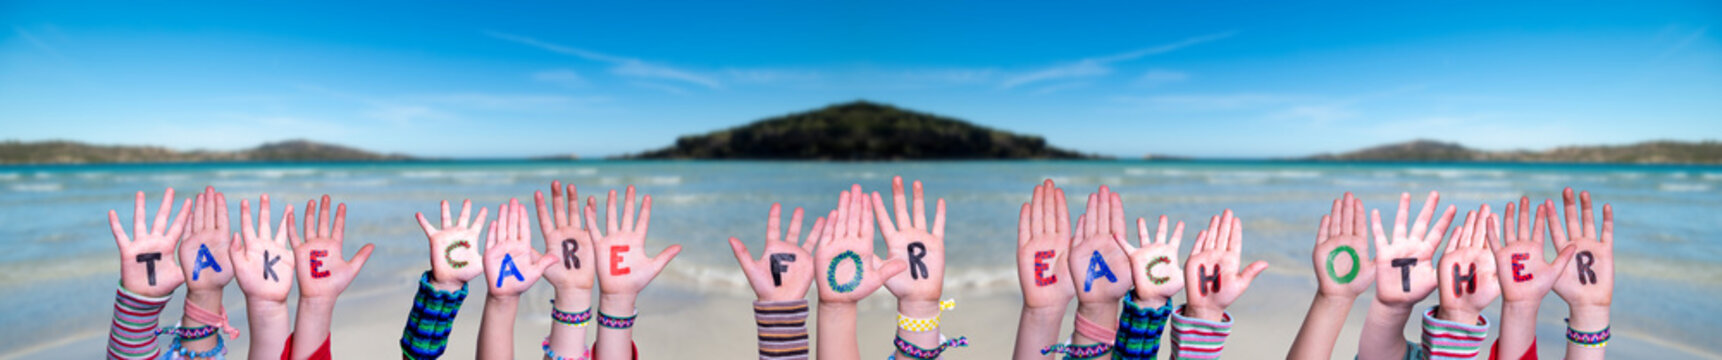 Children Hands Building Colorful English Word Take Care For Each Other. Ocean And Beach As Background